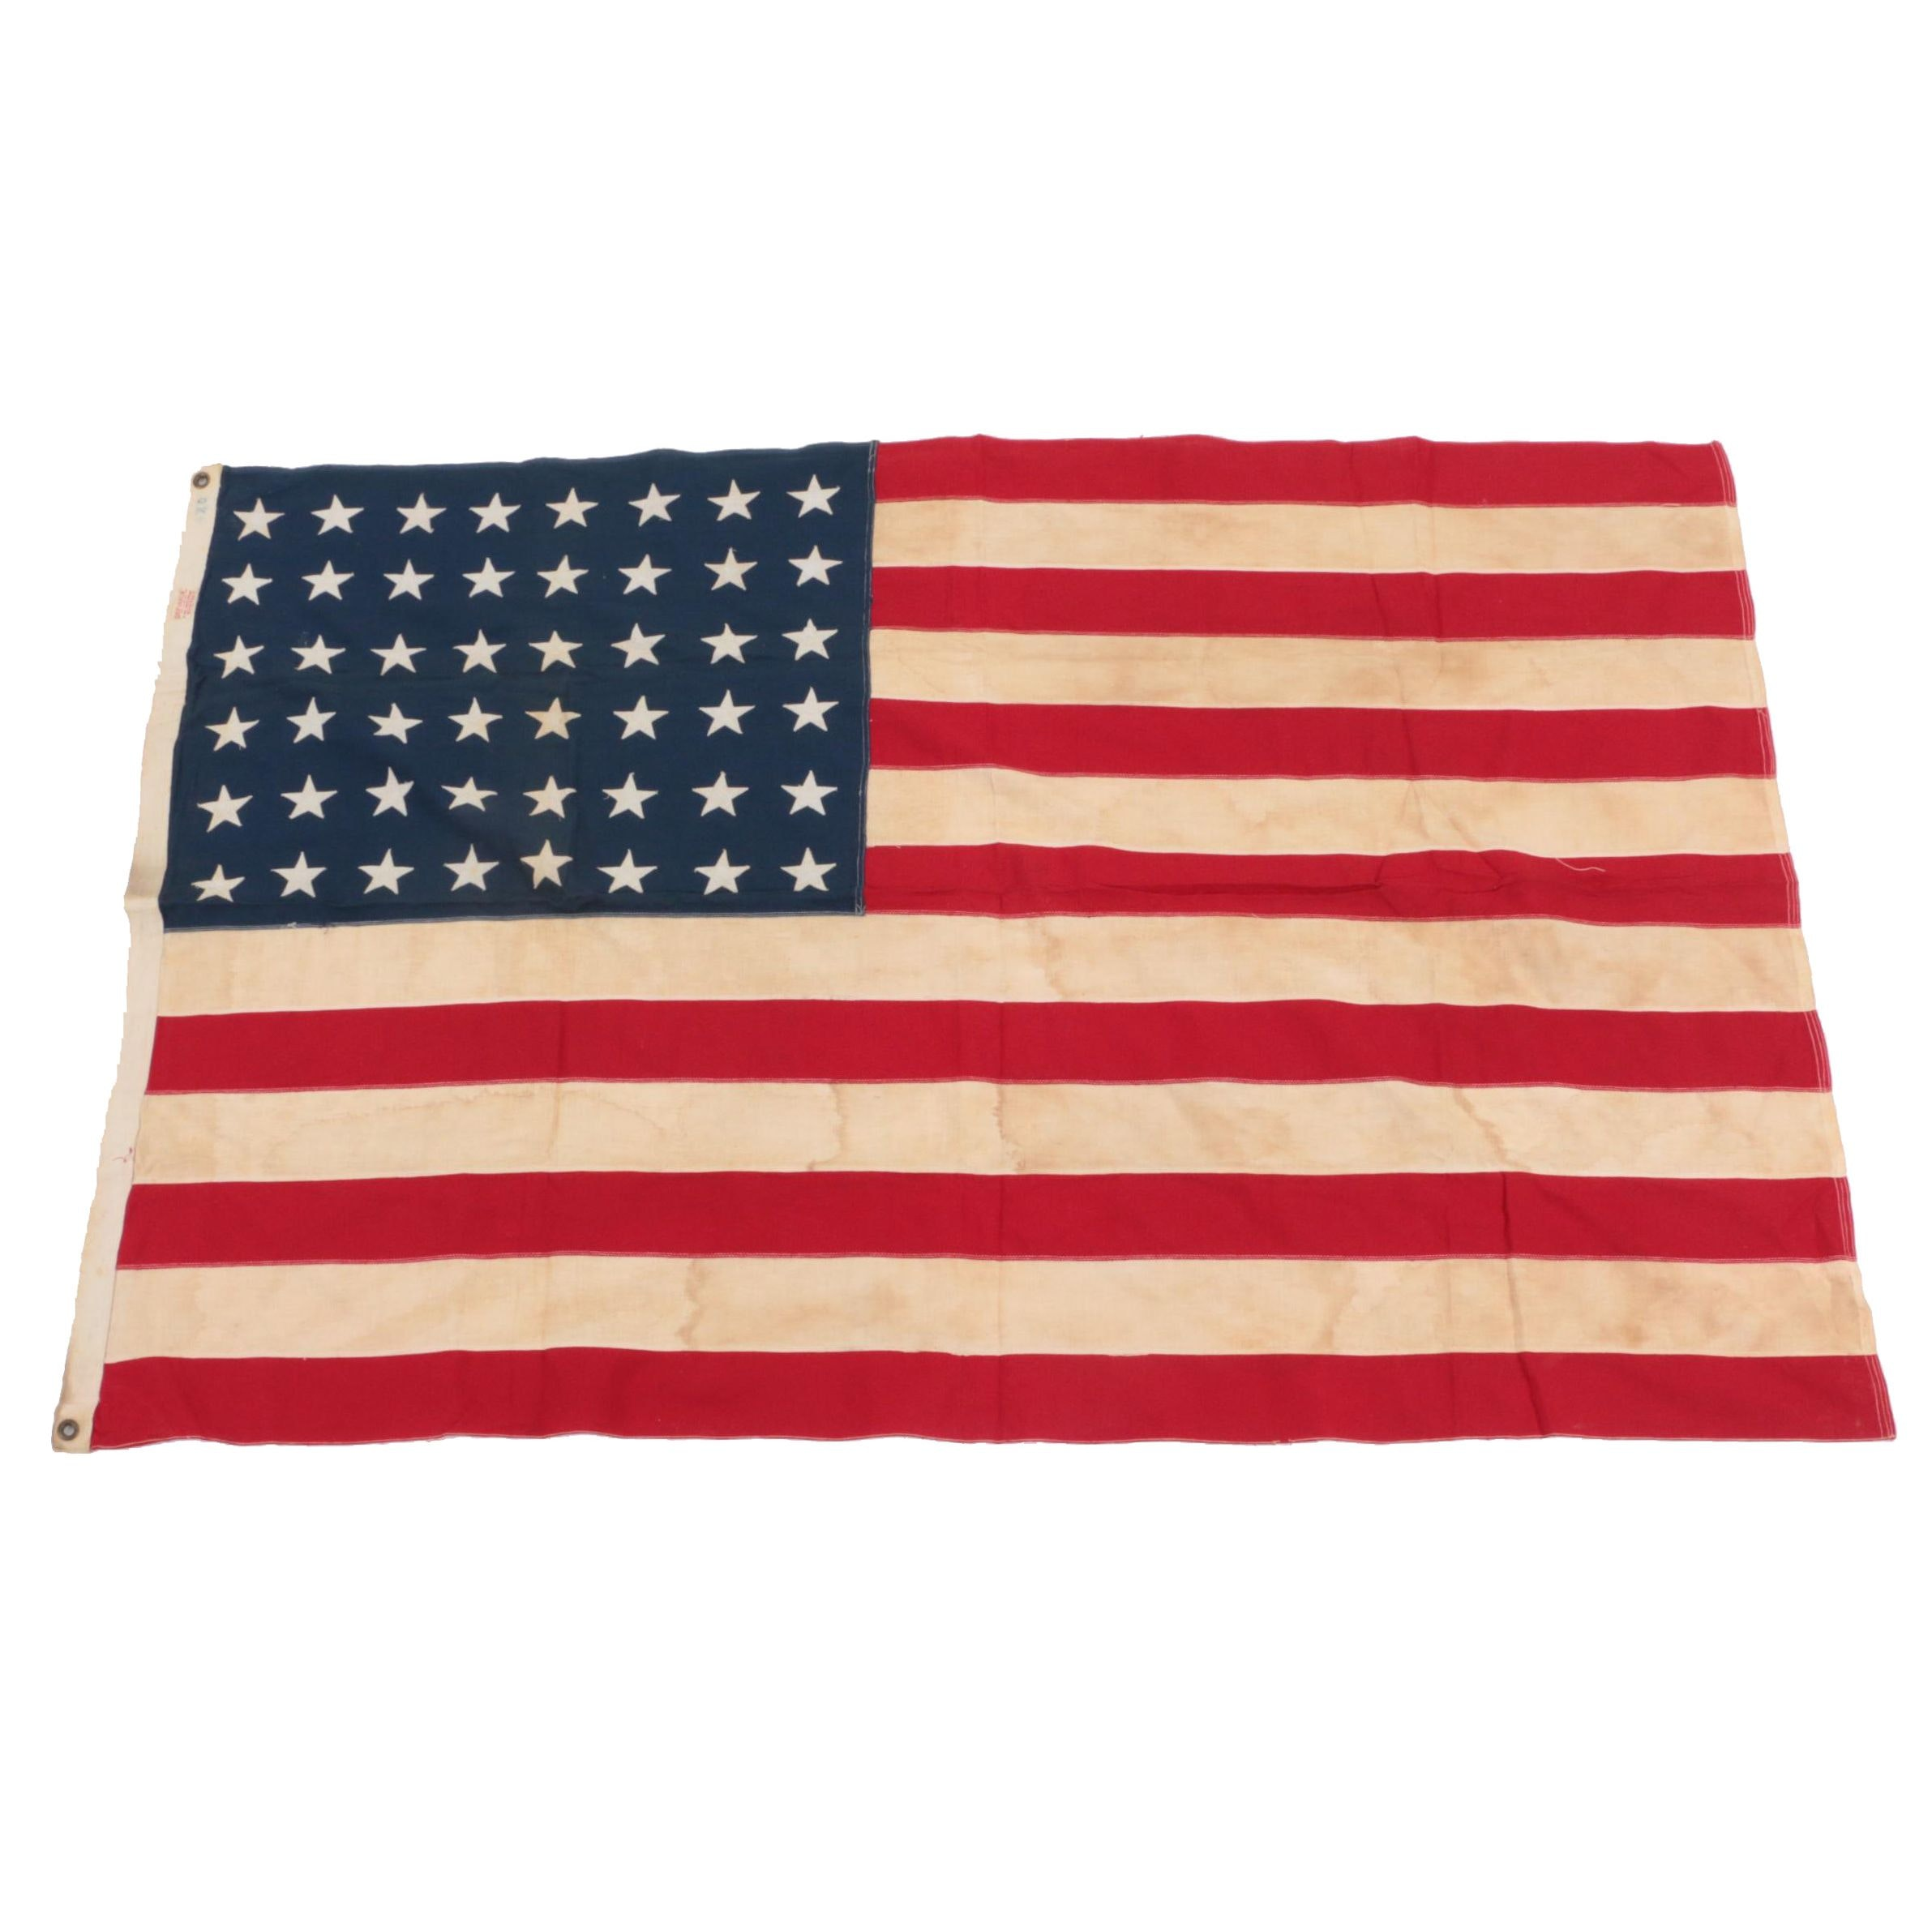 Vintage Forty-Eight Star Flag, 1912-1959 by Defiance Bunting